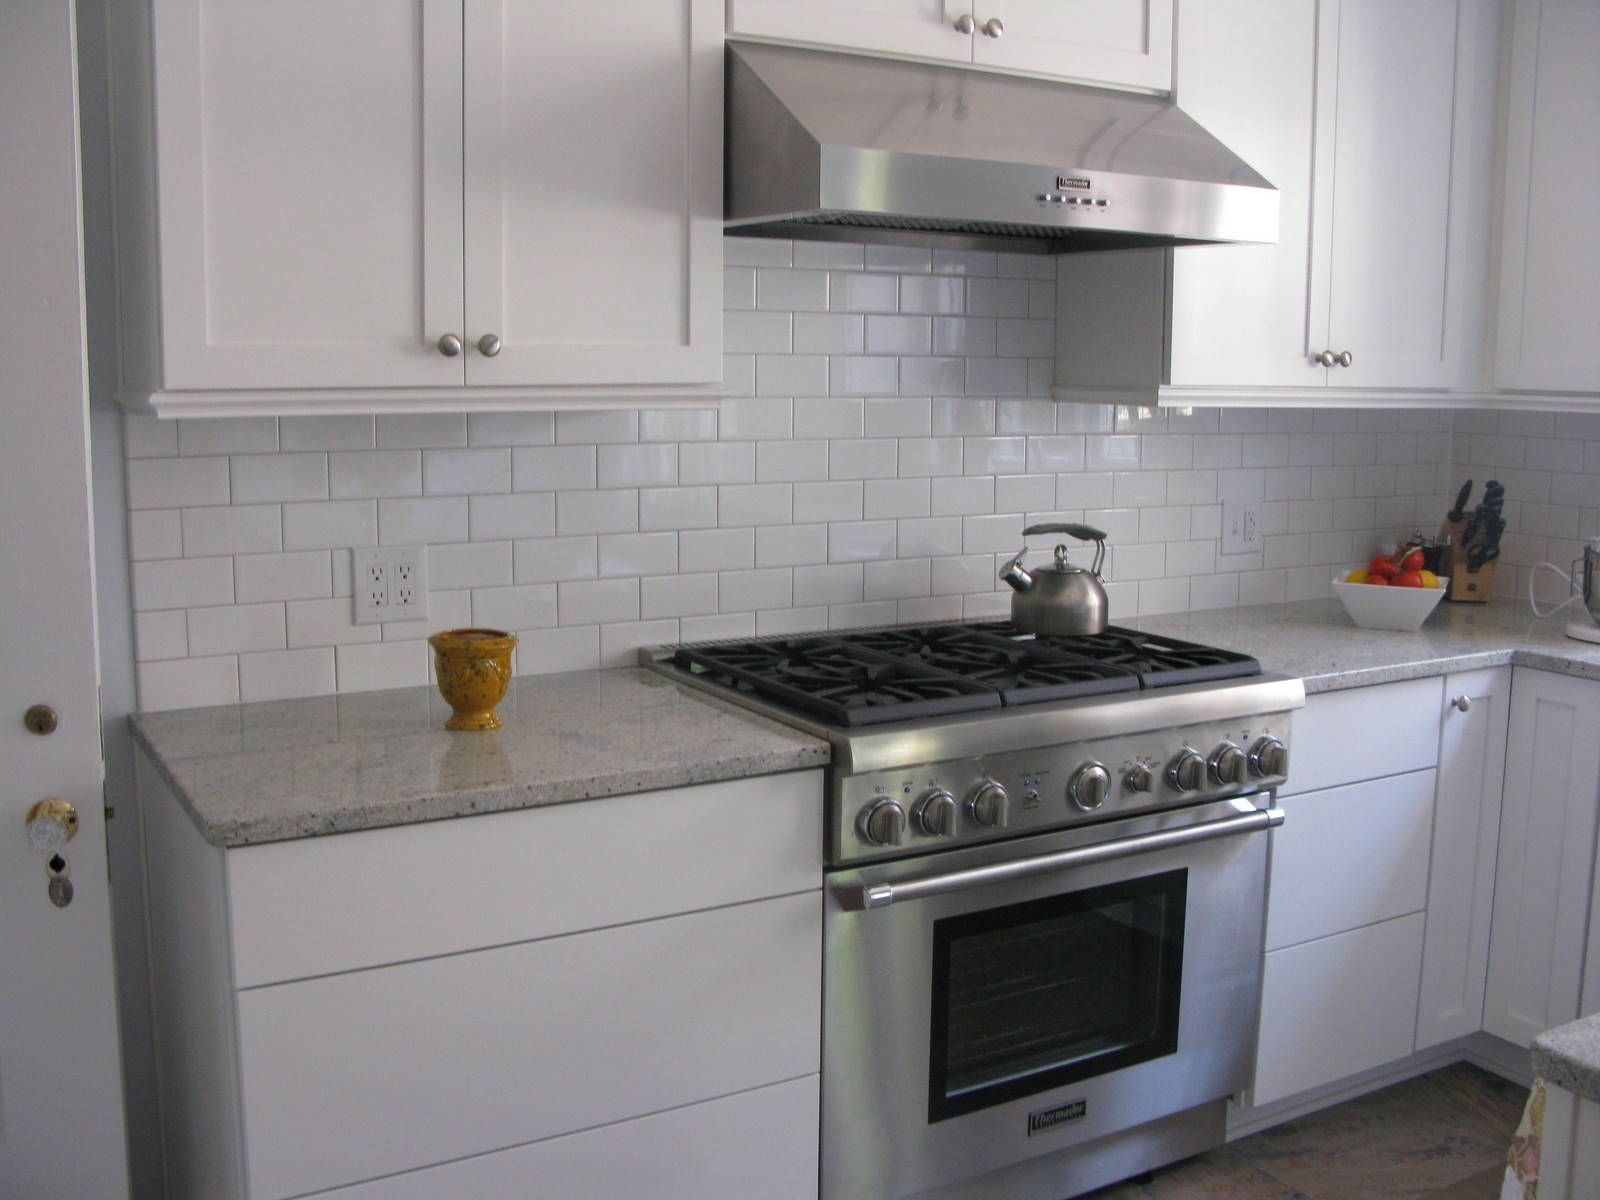 And Now The After White Tile Backsplash Modern Kitchen Tiles